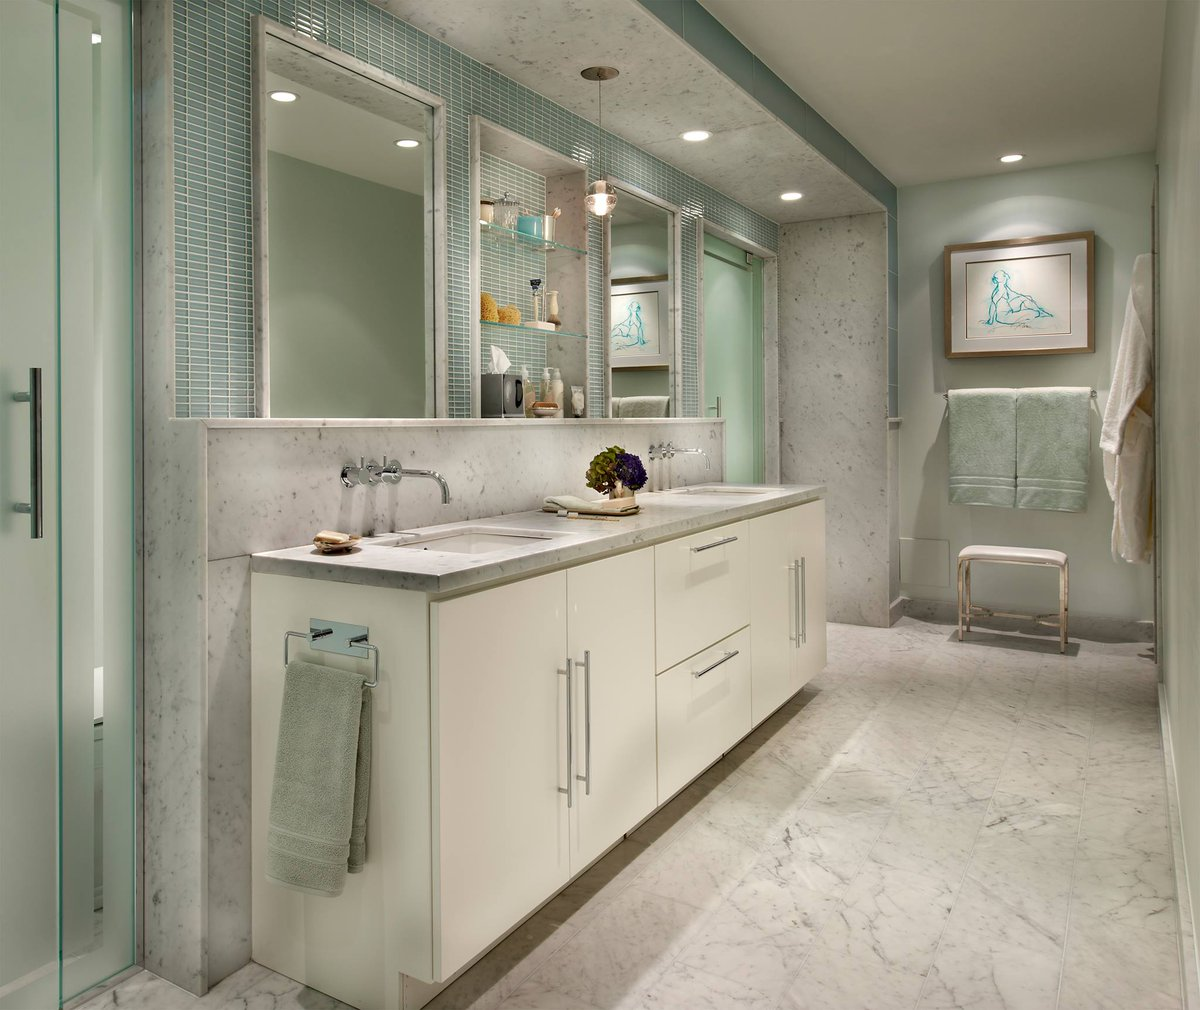 Artistic Tile On Twitter This Airy Chicago Bath Pairs Sage Green Accents W Timeless Italian Biancocarrara Marble Design Frank Ponterio Artistic Tile Chicago Https T Co 3sgwzq8pan